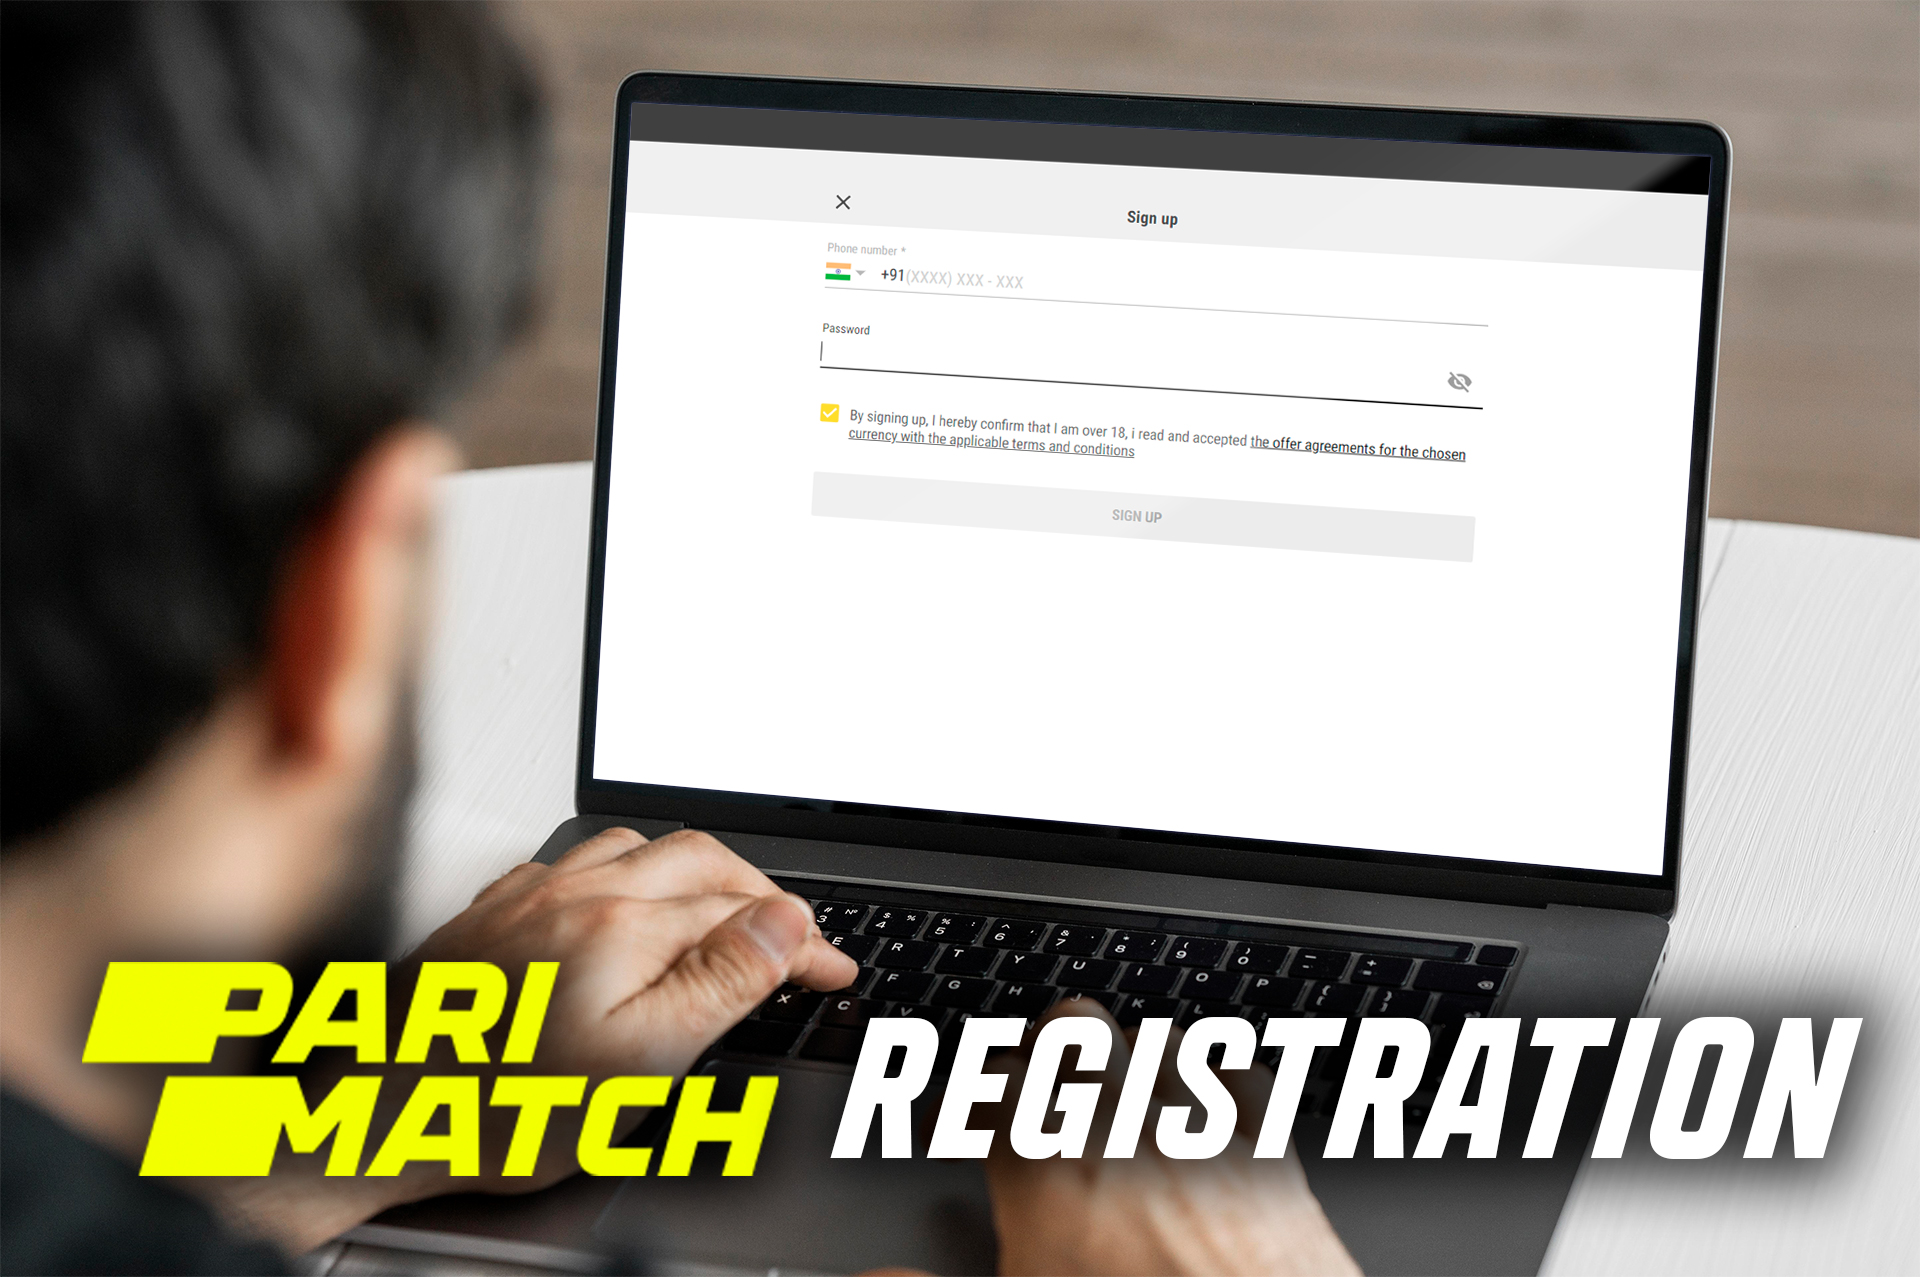 Complete a simple registration in a few steps to start betting on sporting events.